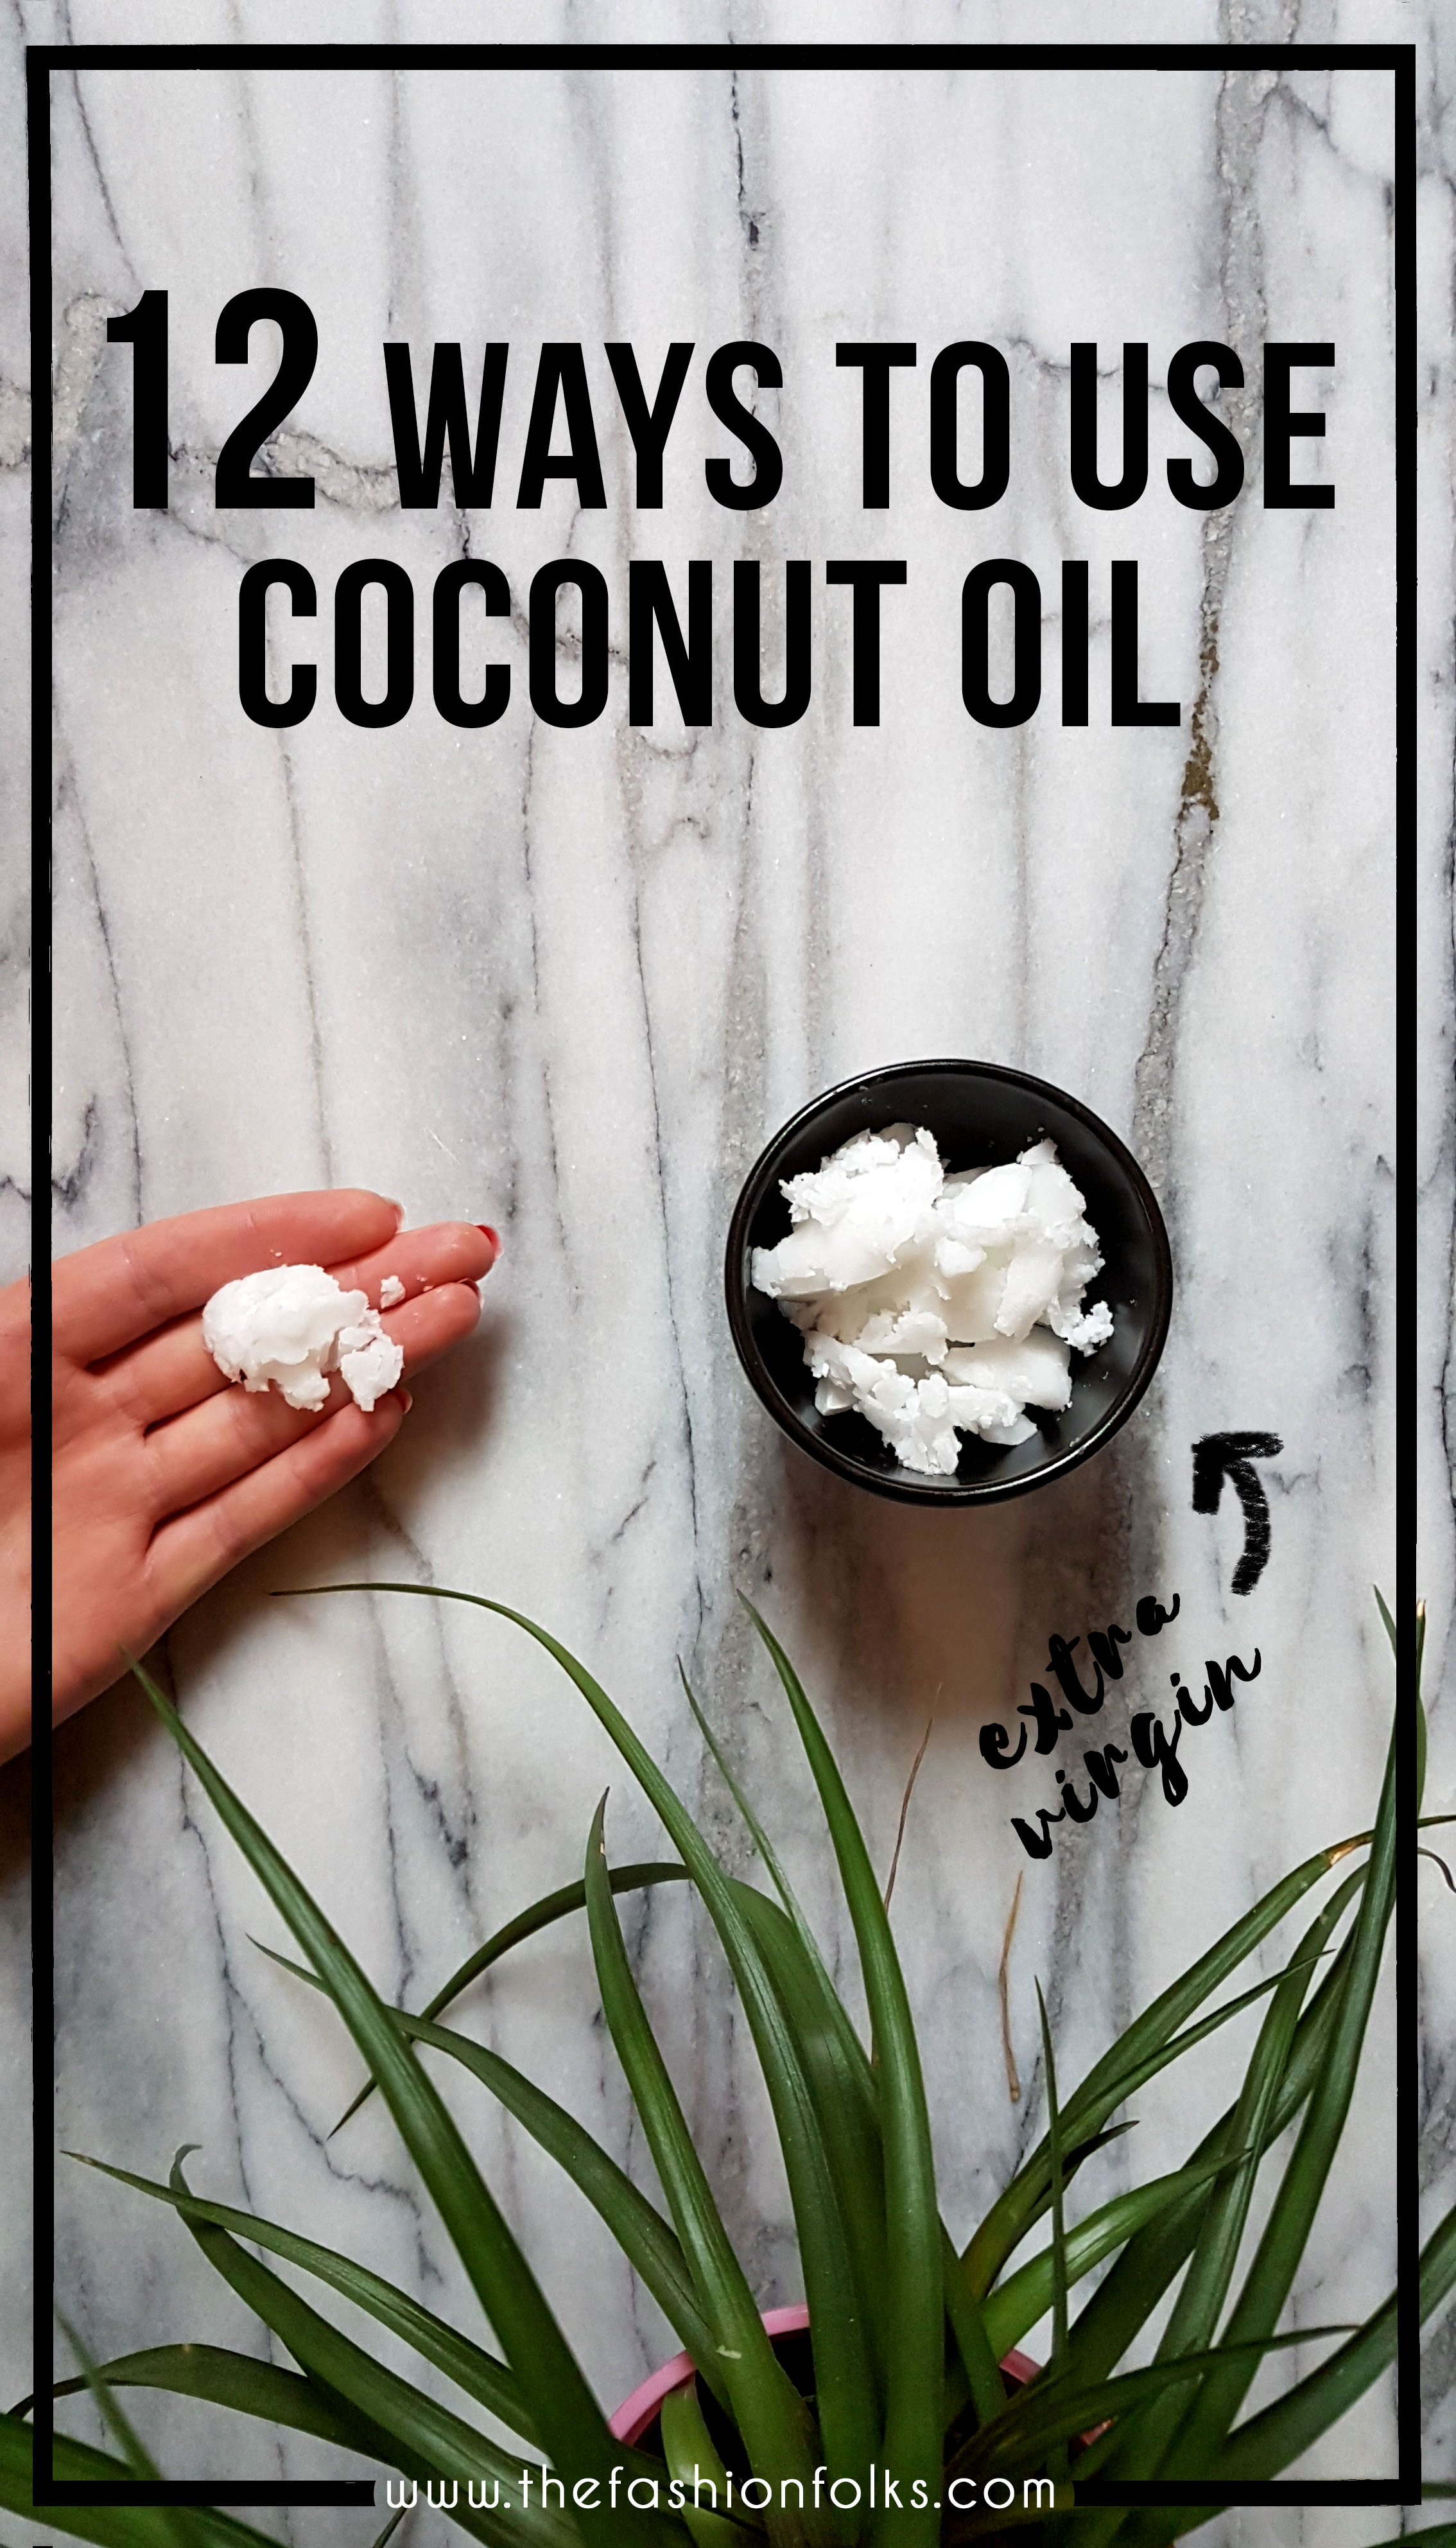 12 Ways To Use Coconut Oil | The Fashion Folks